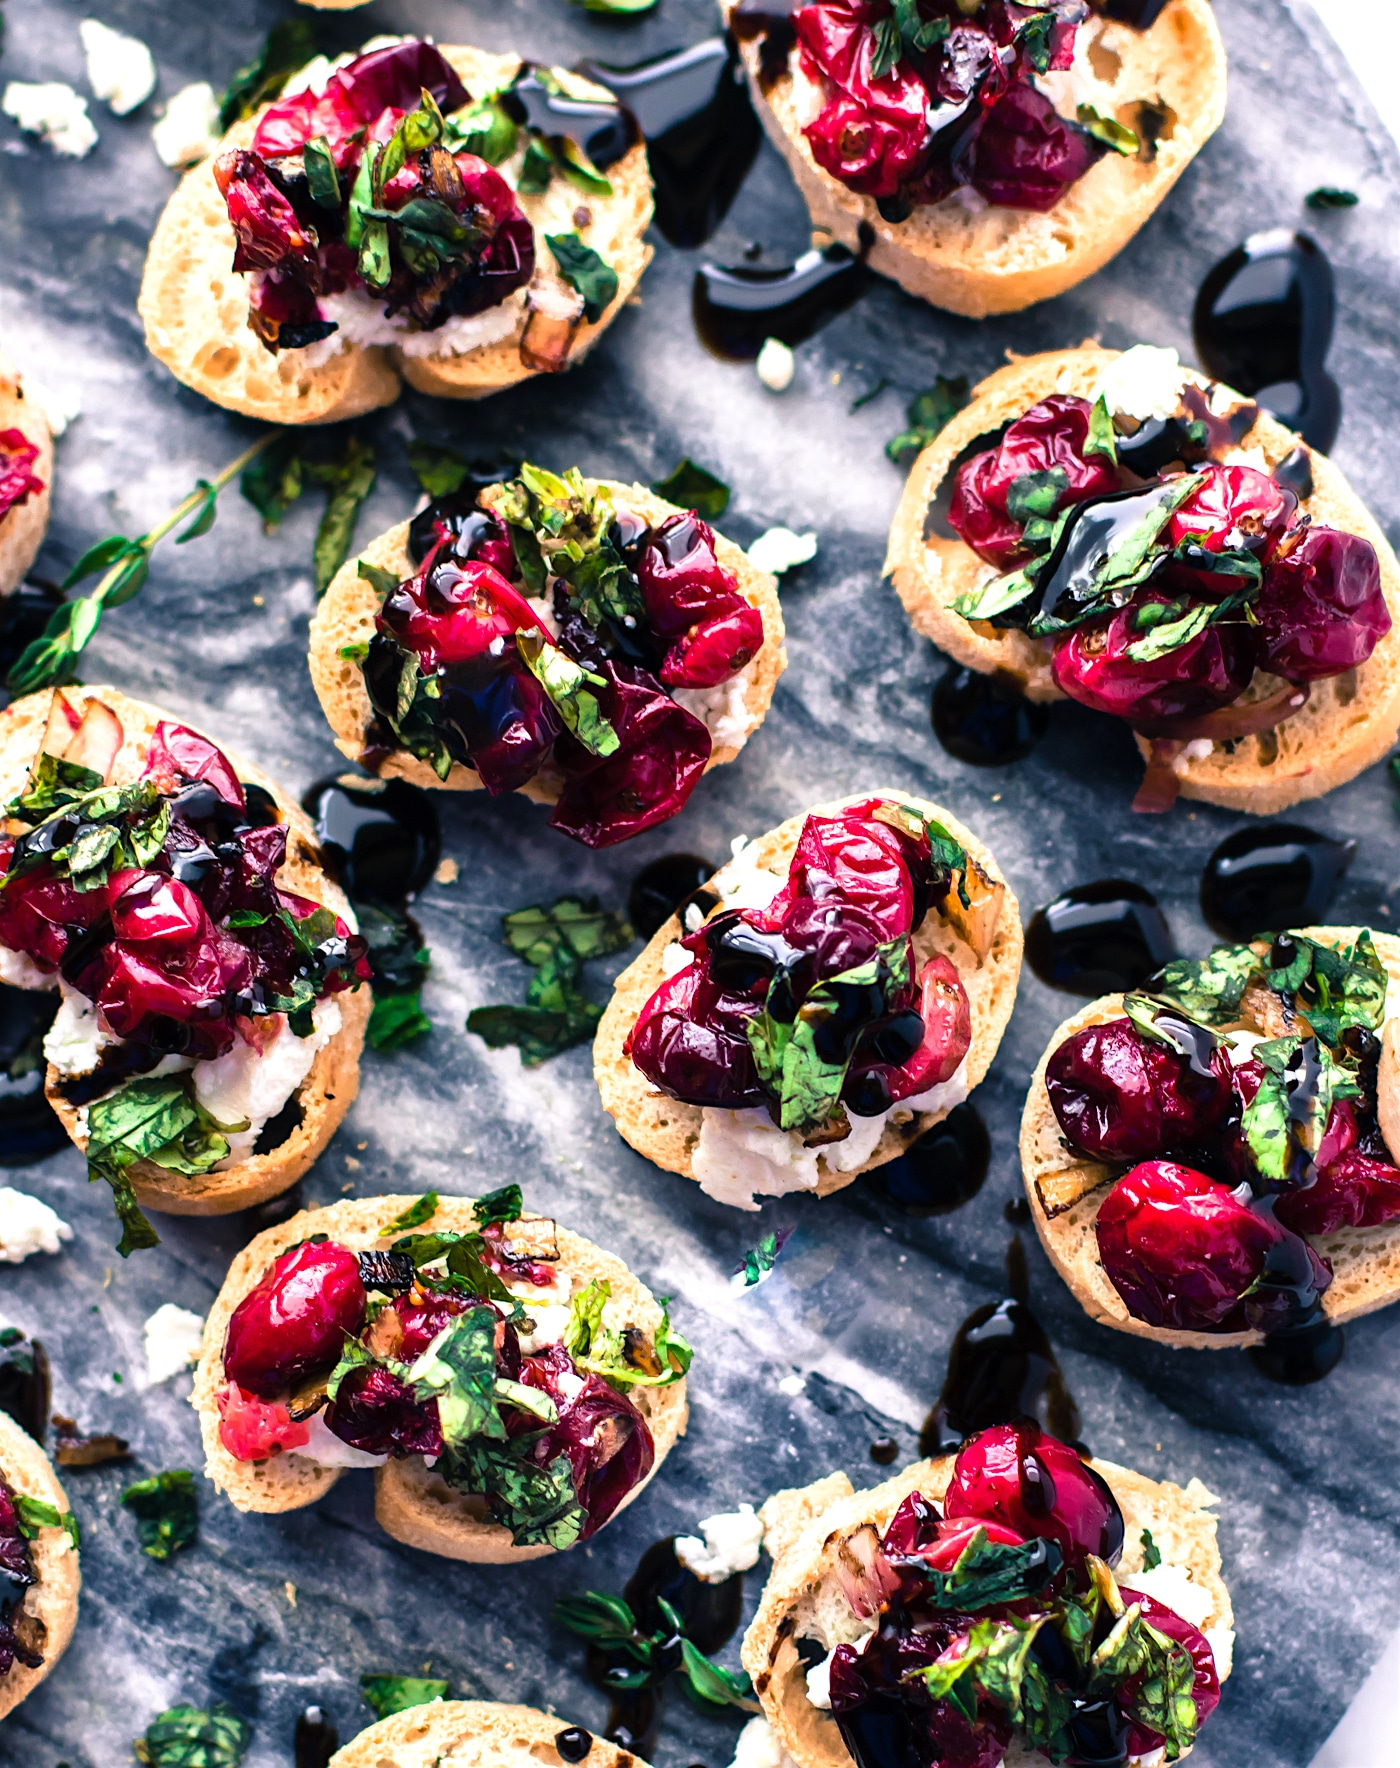 A Gluten Free Crostini baked appetizer recipe perfect for the holidays! This quick cranberry goat cheese gluten free crostini is made with roasted balsamic cranberries, sweet onion, then topped with fresh basil and balsamic glaze. Super quick, easy, healthy, and a delicious! One of my favorite crowd-pleasing appetizers. www.cottercrunch.com